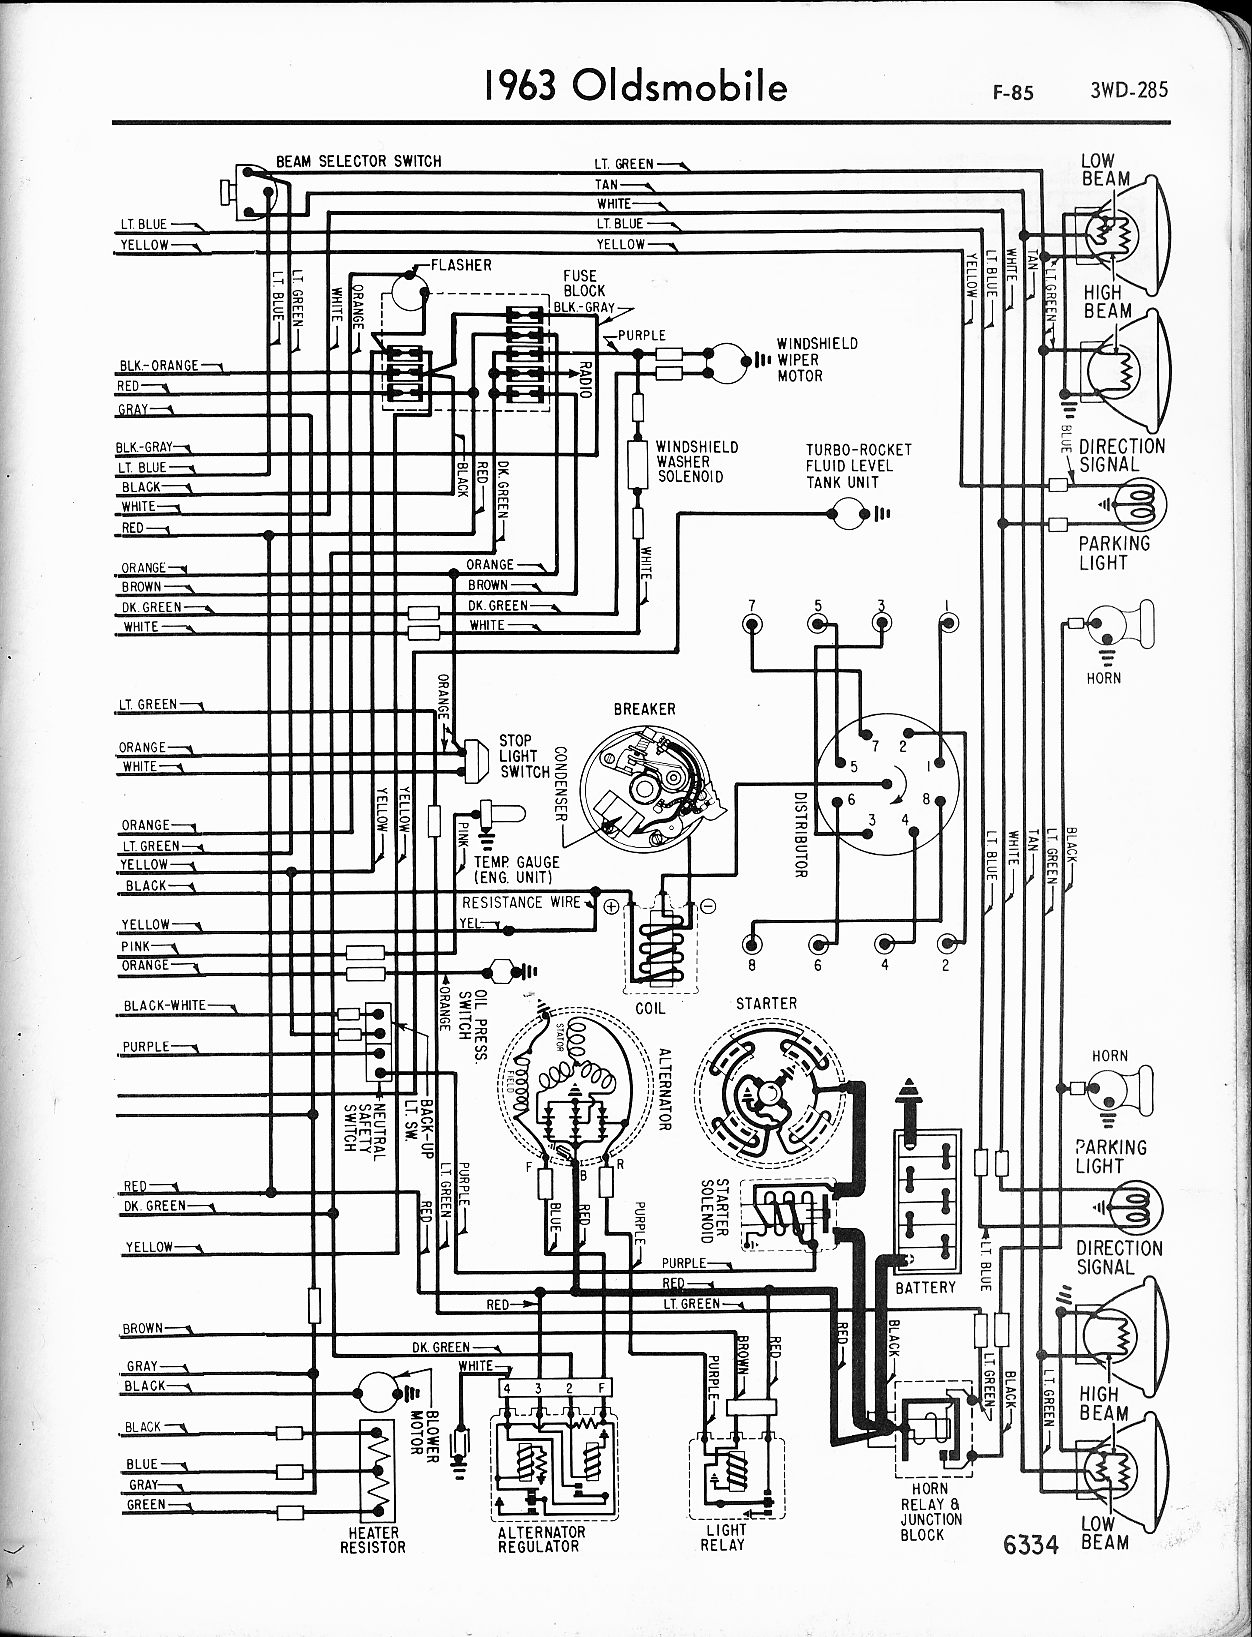 92 Cutlass Supreme Fuse Diagram